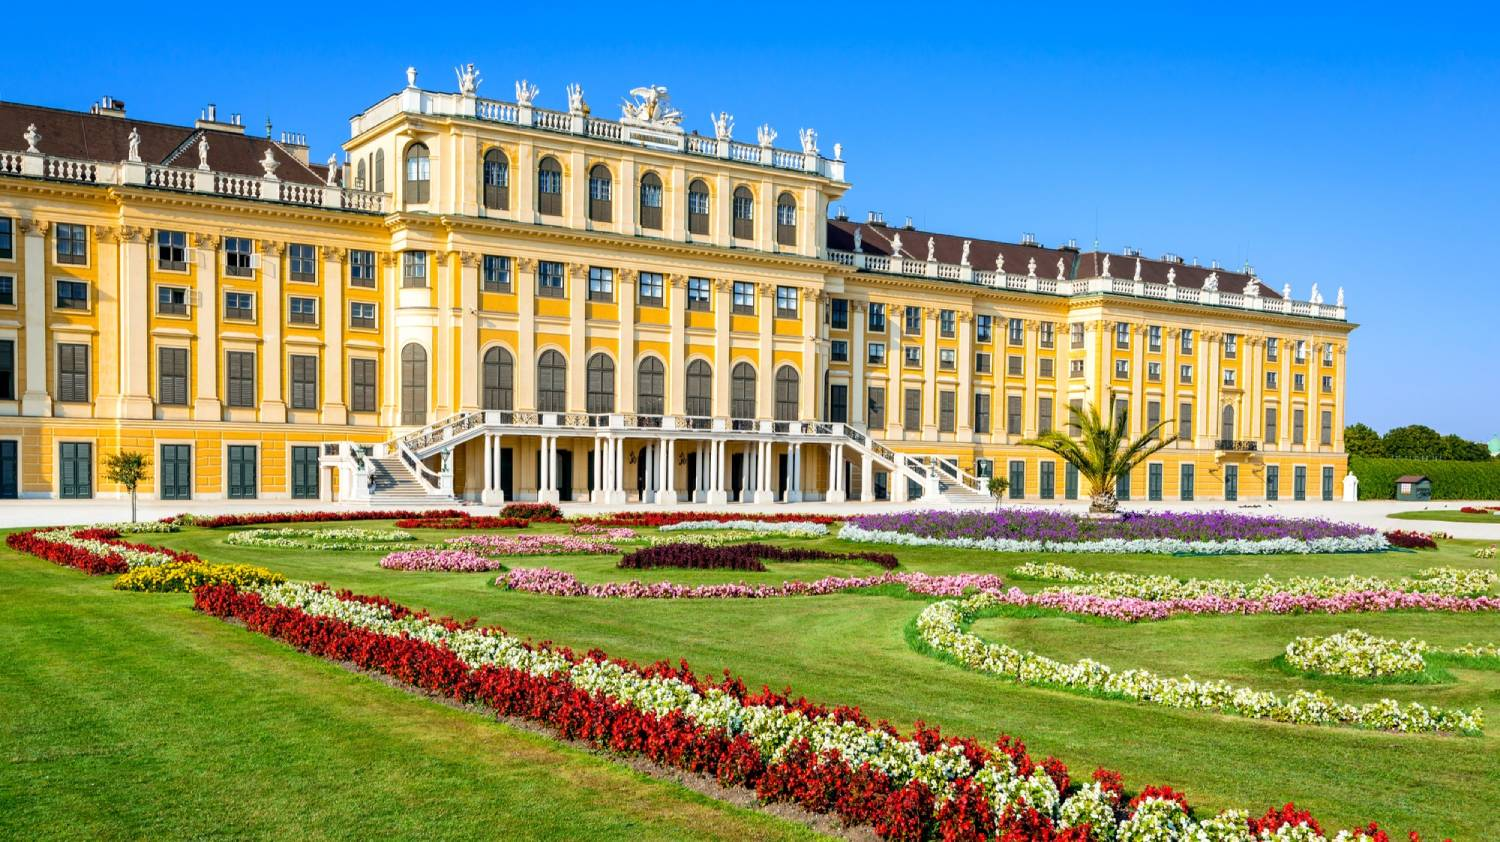 Schonbrunn Palace - Things To Do In Vienna